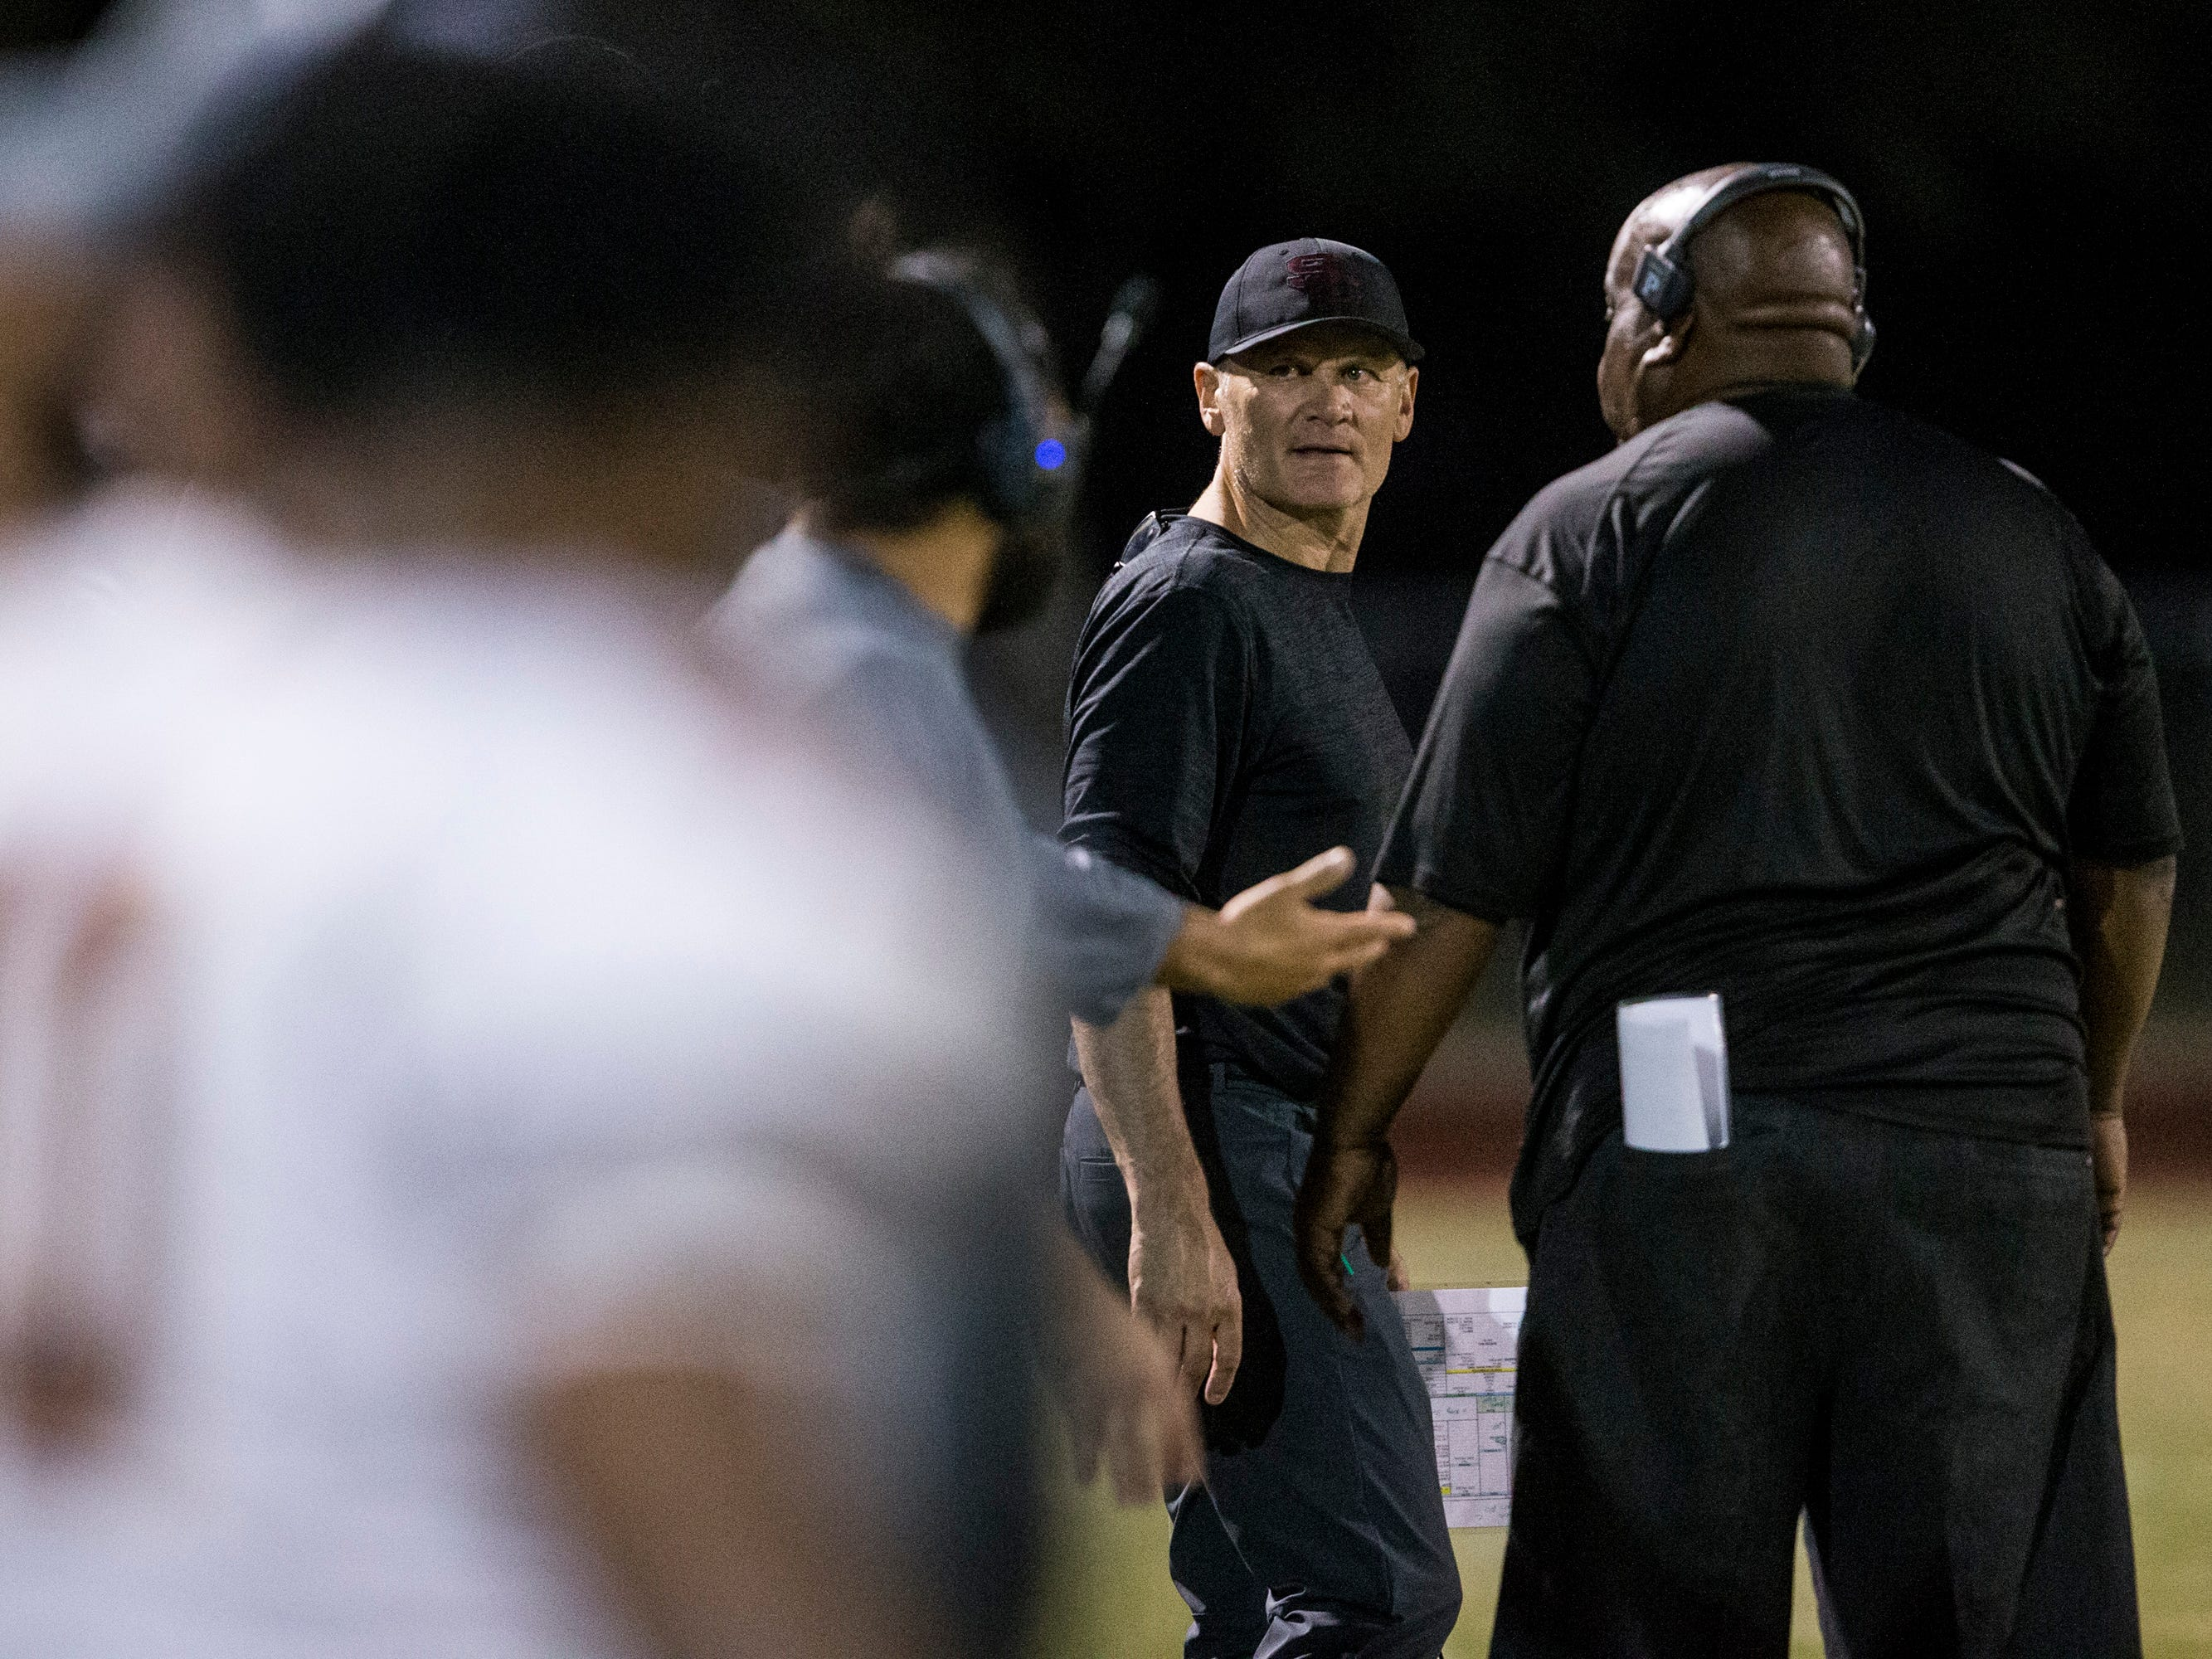 Salpointe head coach Dennis Bene talks to coaches during the game against Cactus on Friday, Sept. 14, 2018, at Cactus High School in Glendale, Ariz.